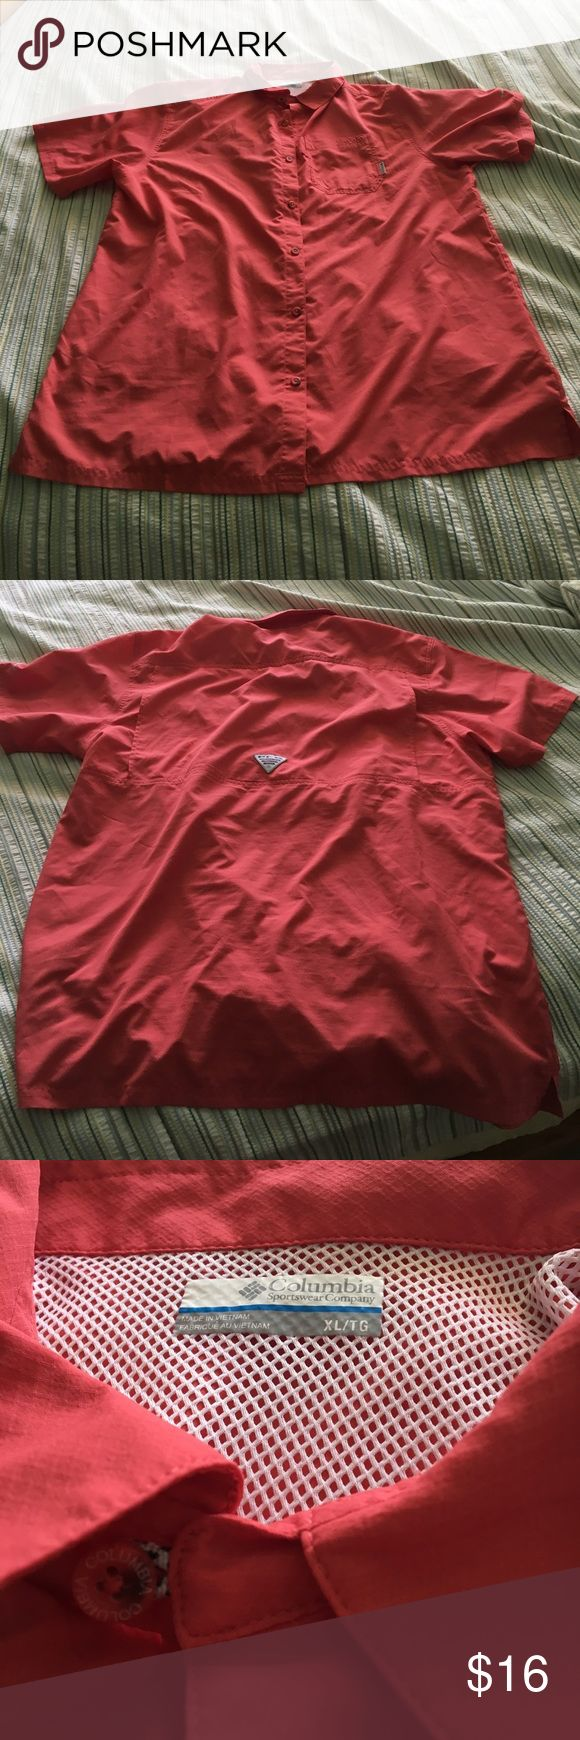 Columbia PFG Shirt Name:Columbia PFG shirt Condition:9/10 Size:Extra Large Color:Salmon •• I WILL ACCEPT OFFERS IF THEY ARE REASONABLE(MOST ITEMS ARE NEGOTIABLE) •• Other:Great Casual Buttondown that you can wear almost anywhere. Very great quality. •• IF YOU BUY 2 OR MORE OF MY ITEMS THAN YOU WILL GET 15% OFF DISCOUNT Columbia Shirts Casual Button Down Shirts